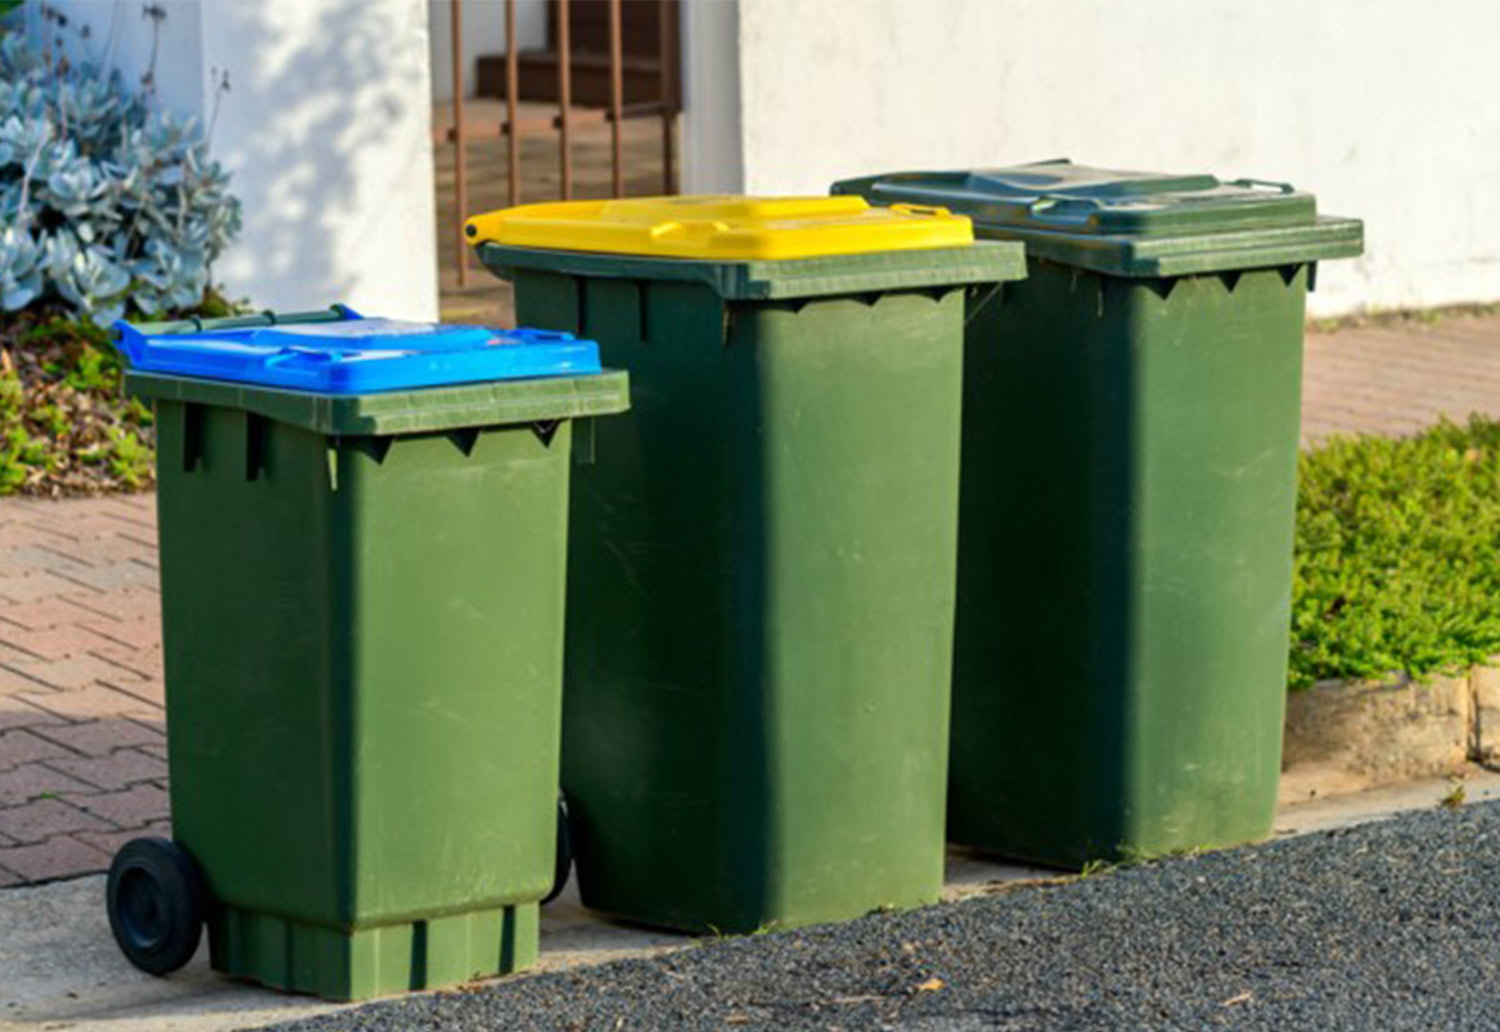 Image of kerbside collections bins